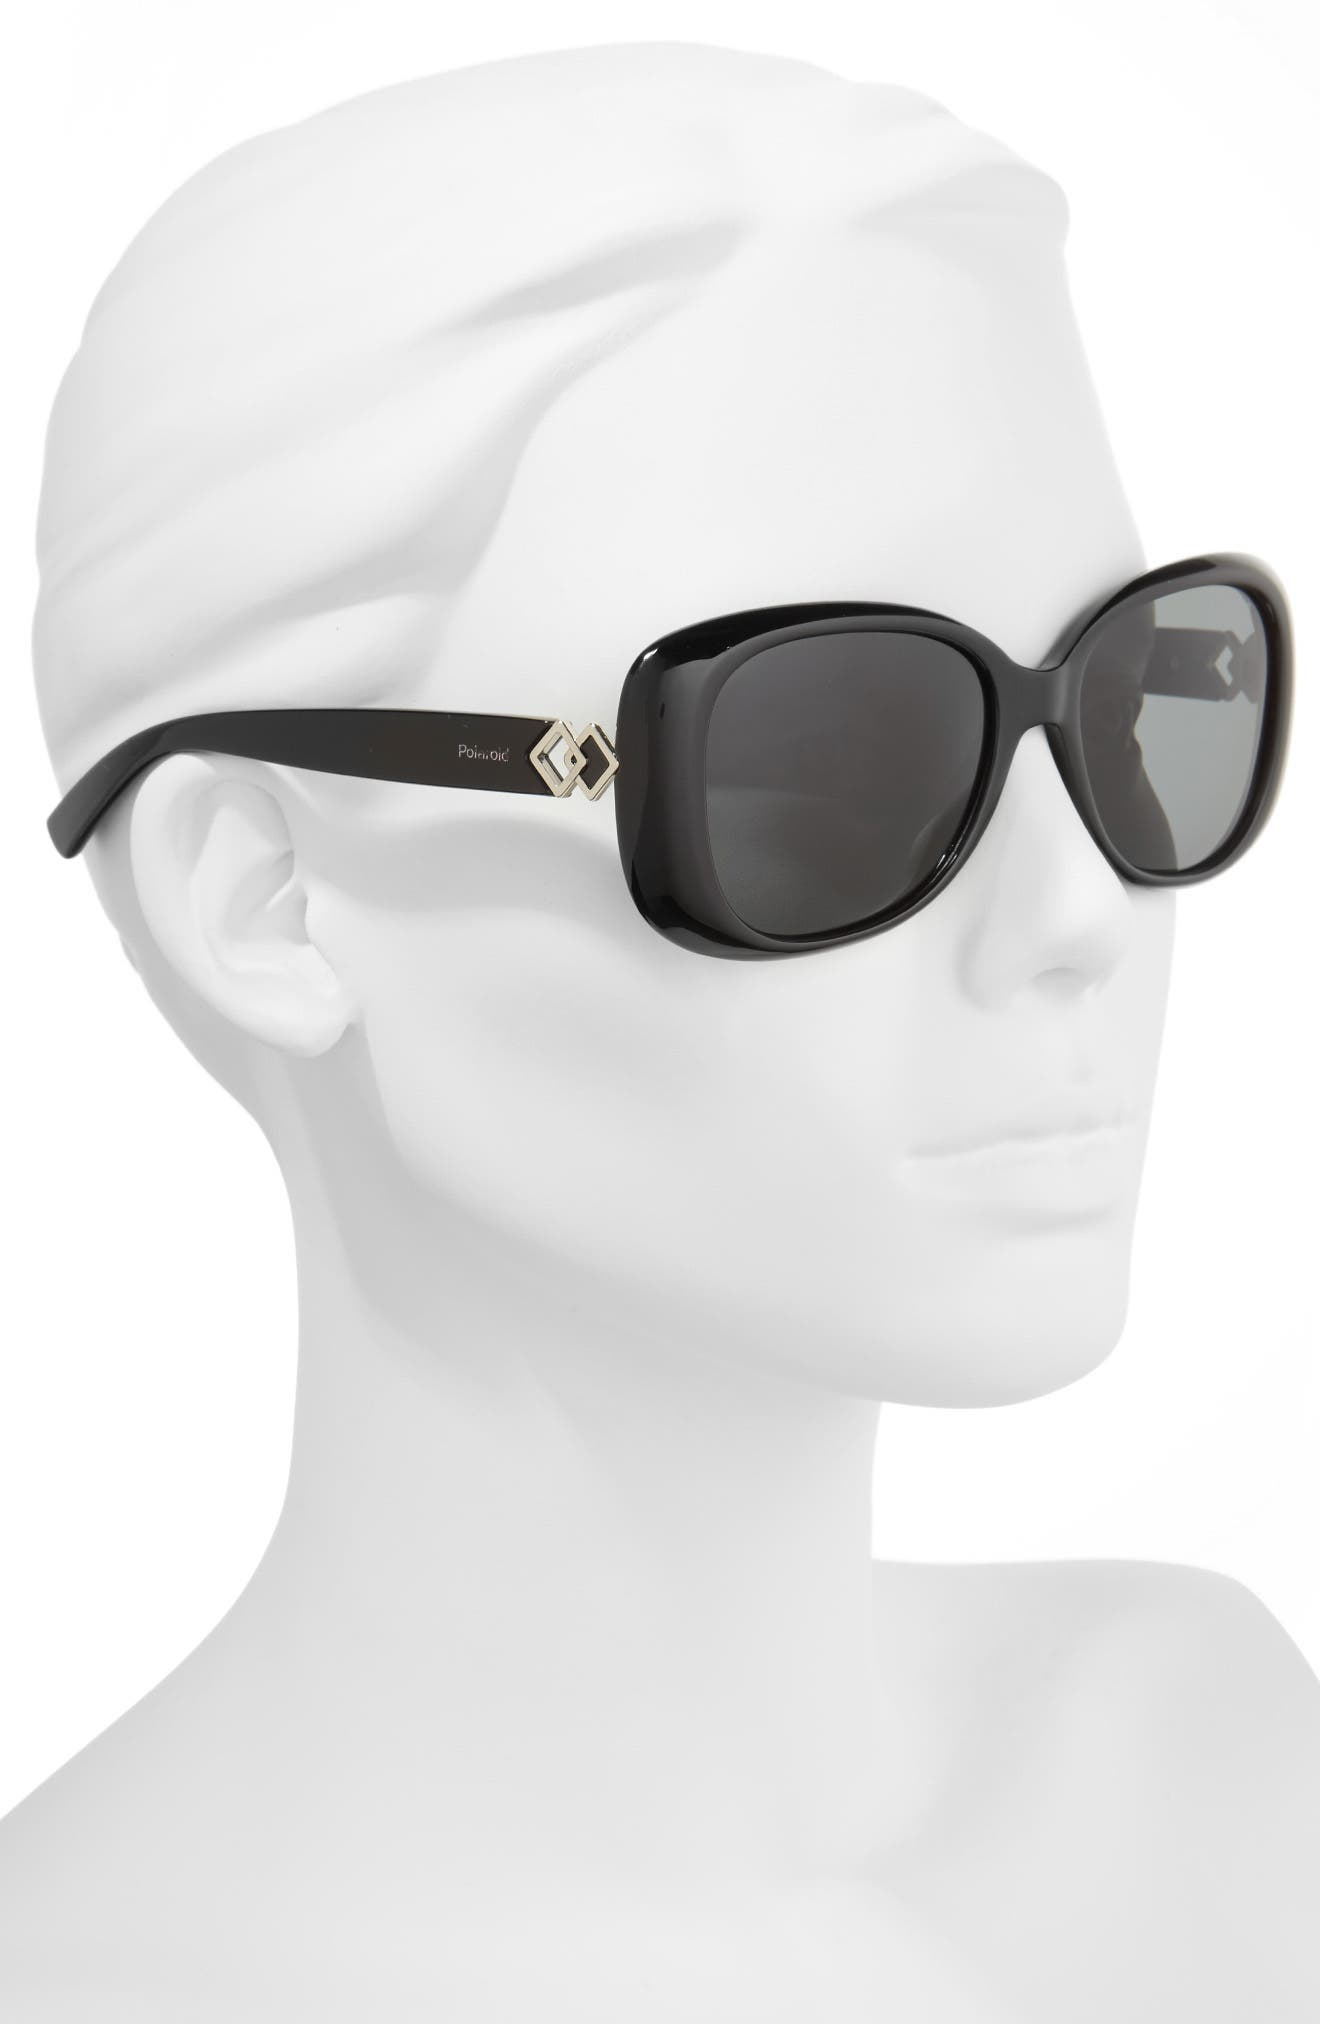 55mm Polarized Butterfly Sunglasses,                             Alternate thumbnail 2, color,                             001